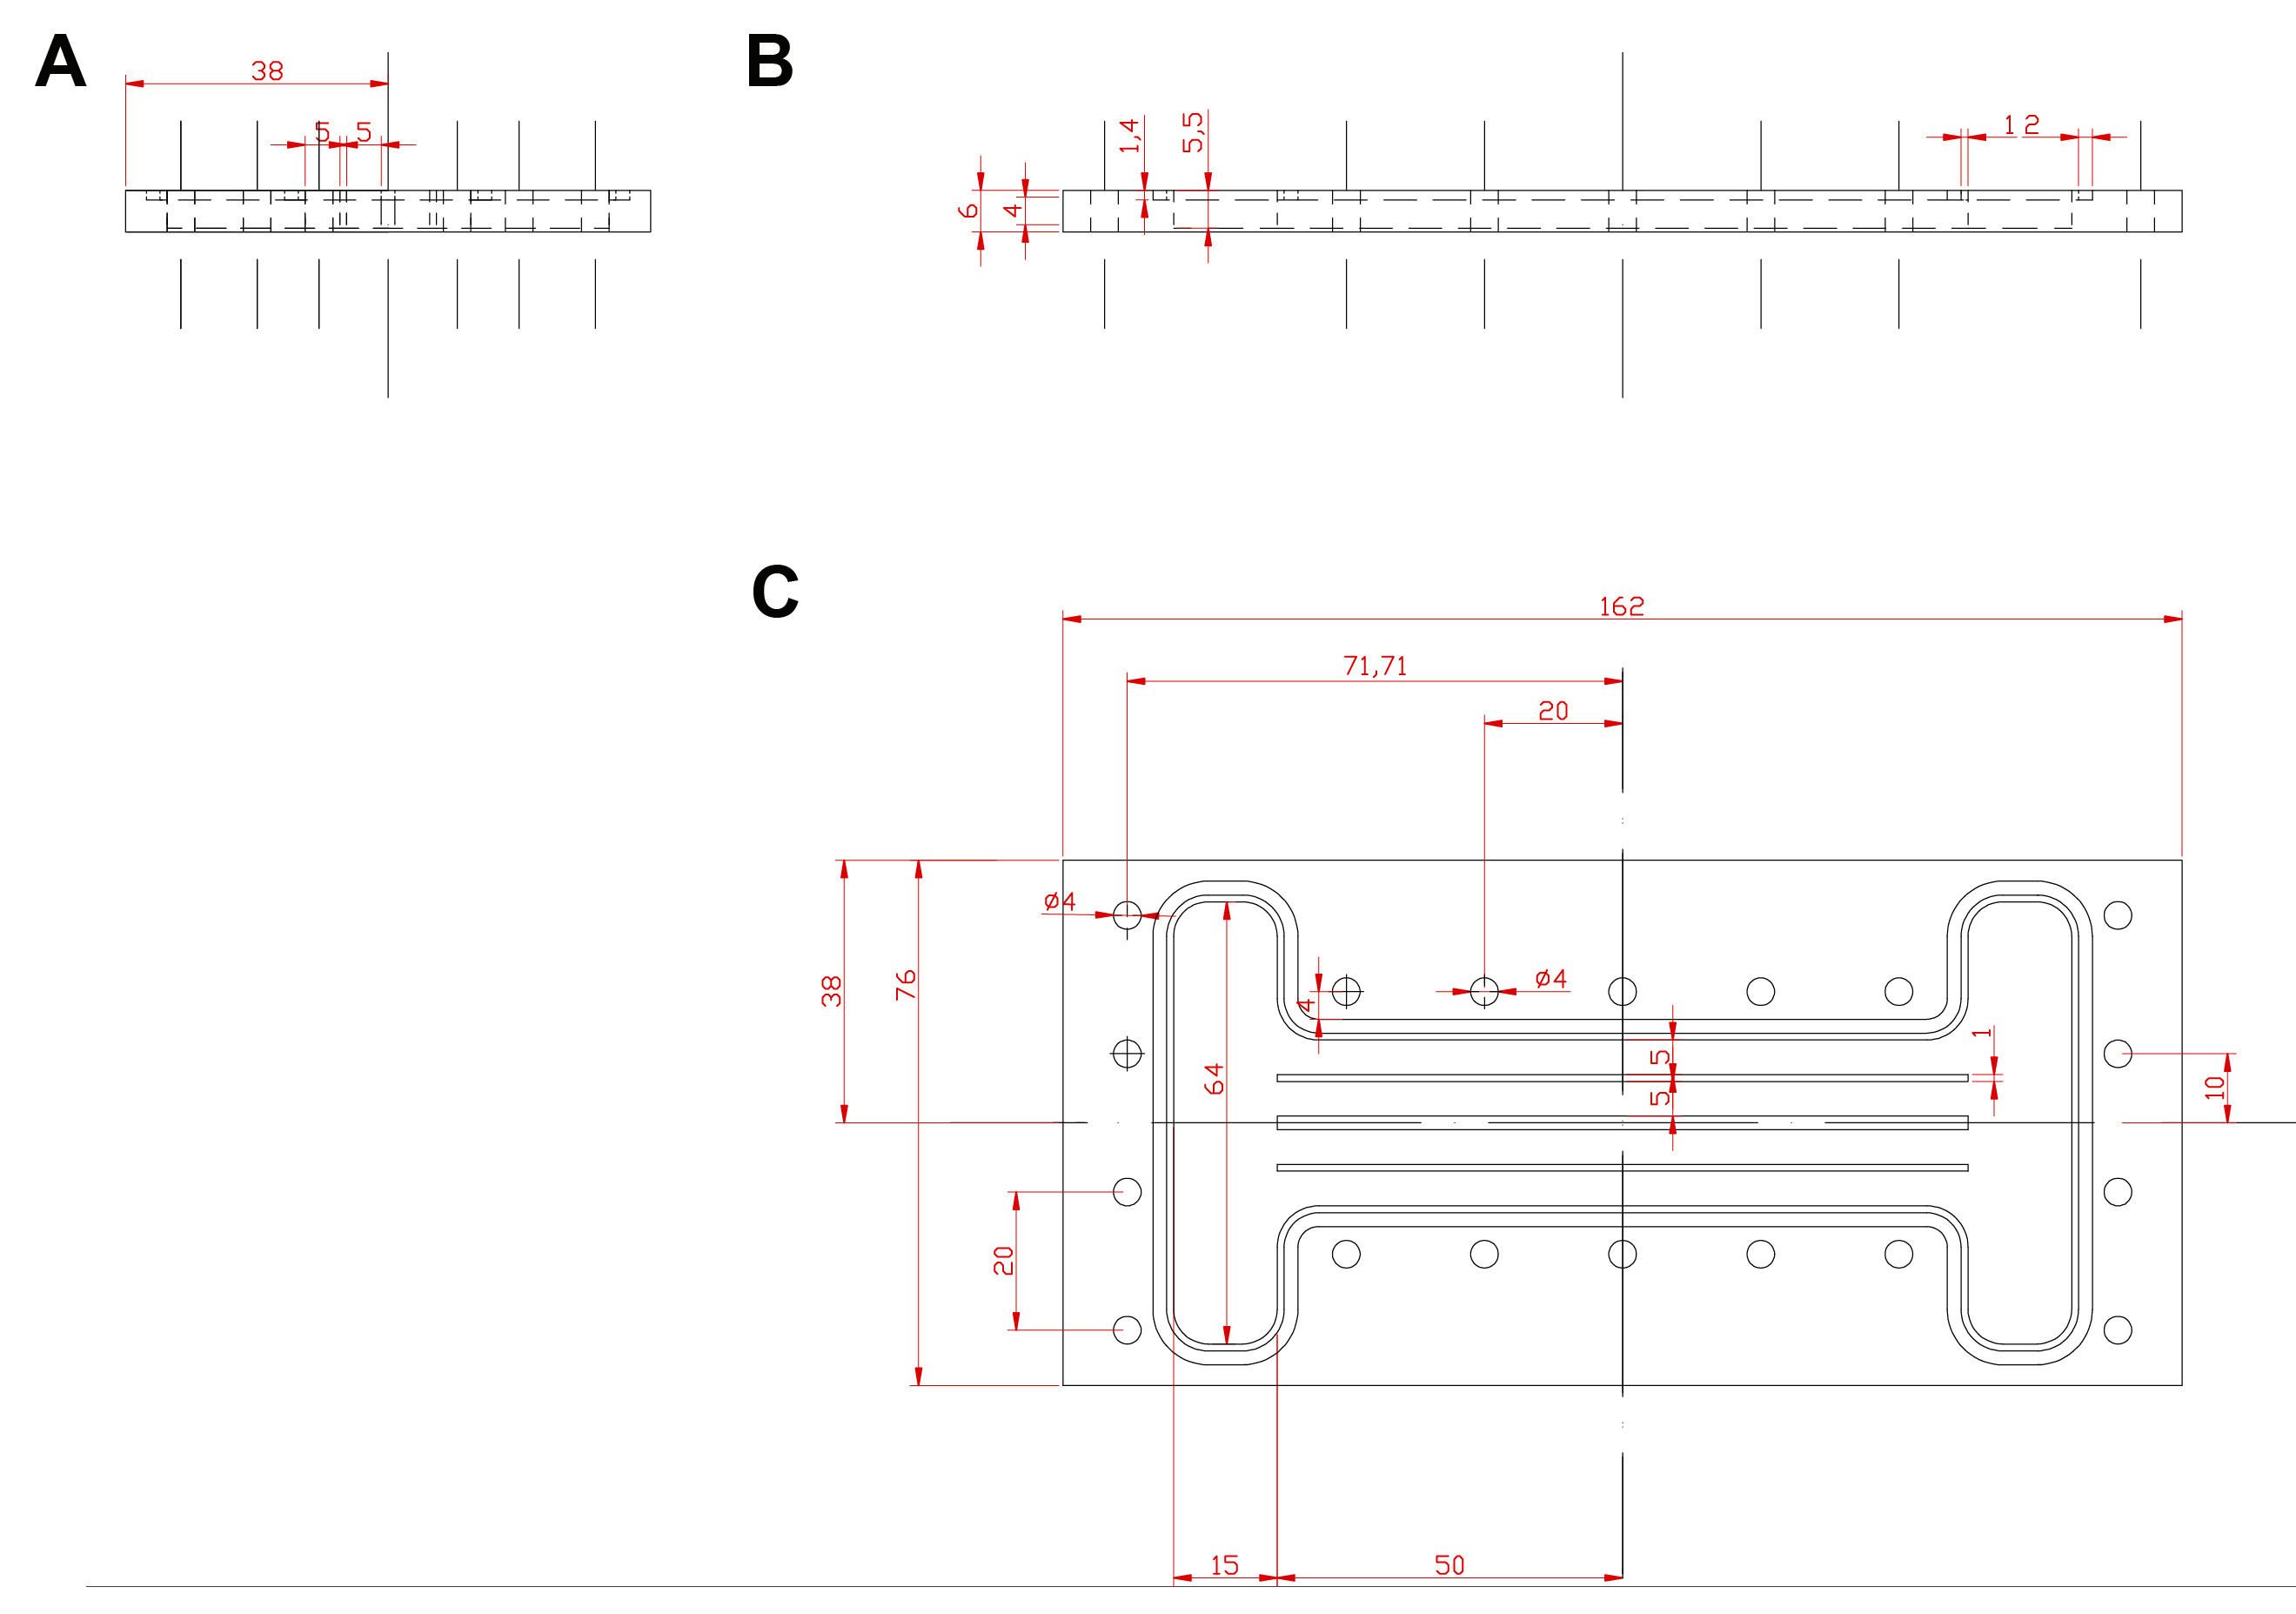 Assembly of a Custom-made Device to Study Spreading